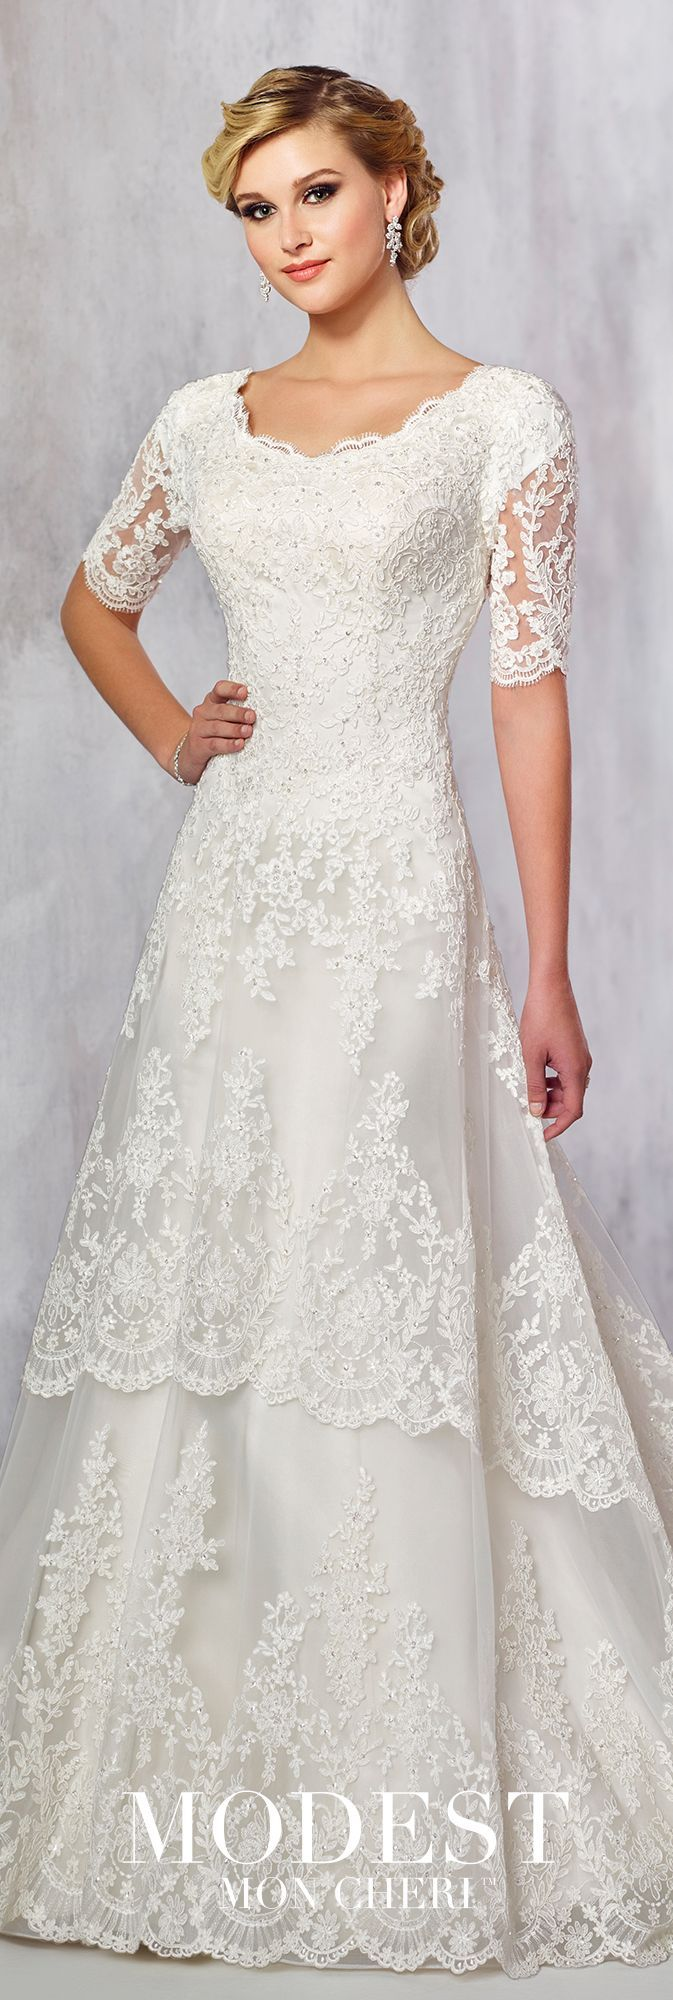 Modest wedding dresses fall collection style tr short